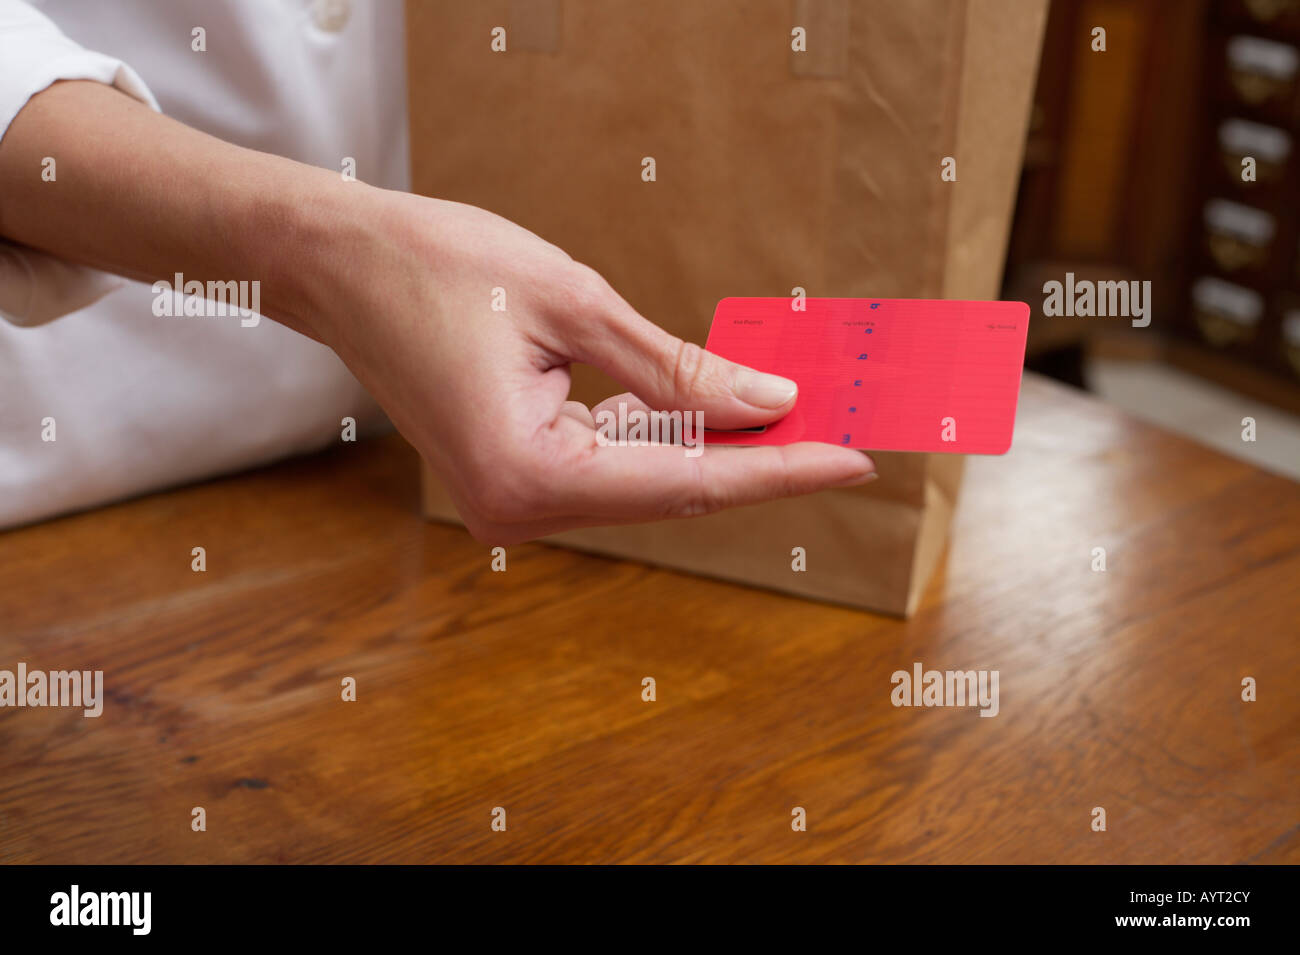 Female pharmacist holding a red card - Stock Image